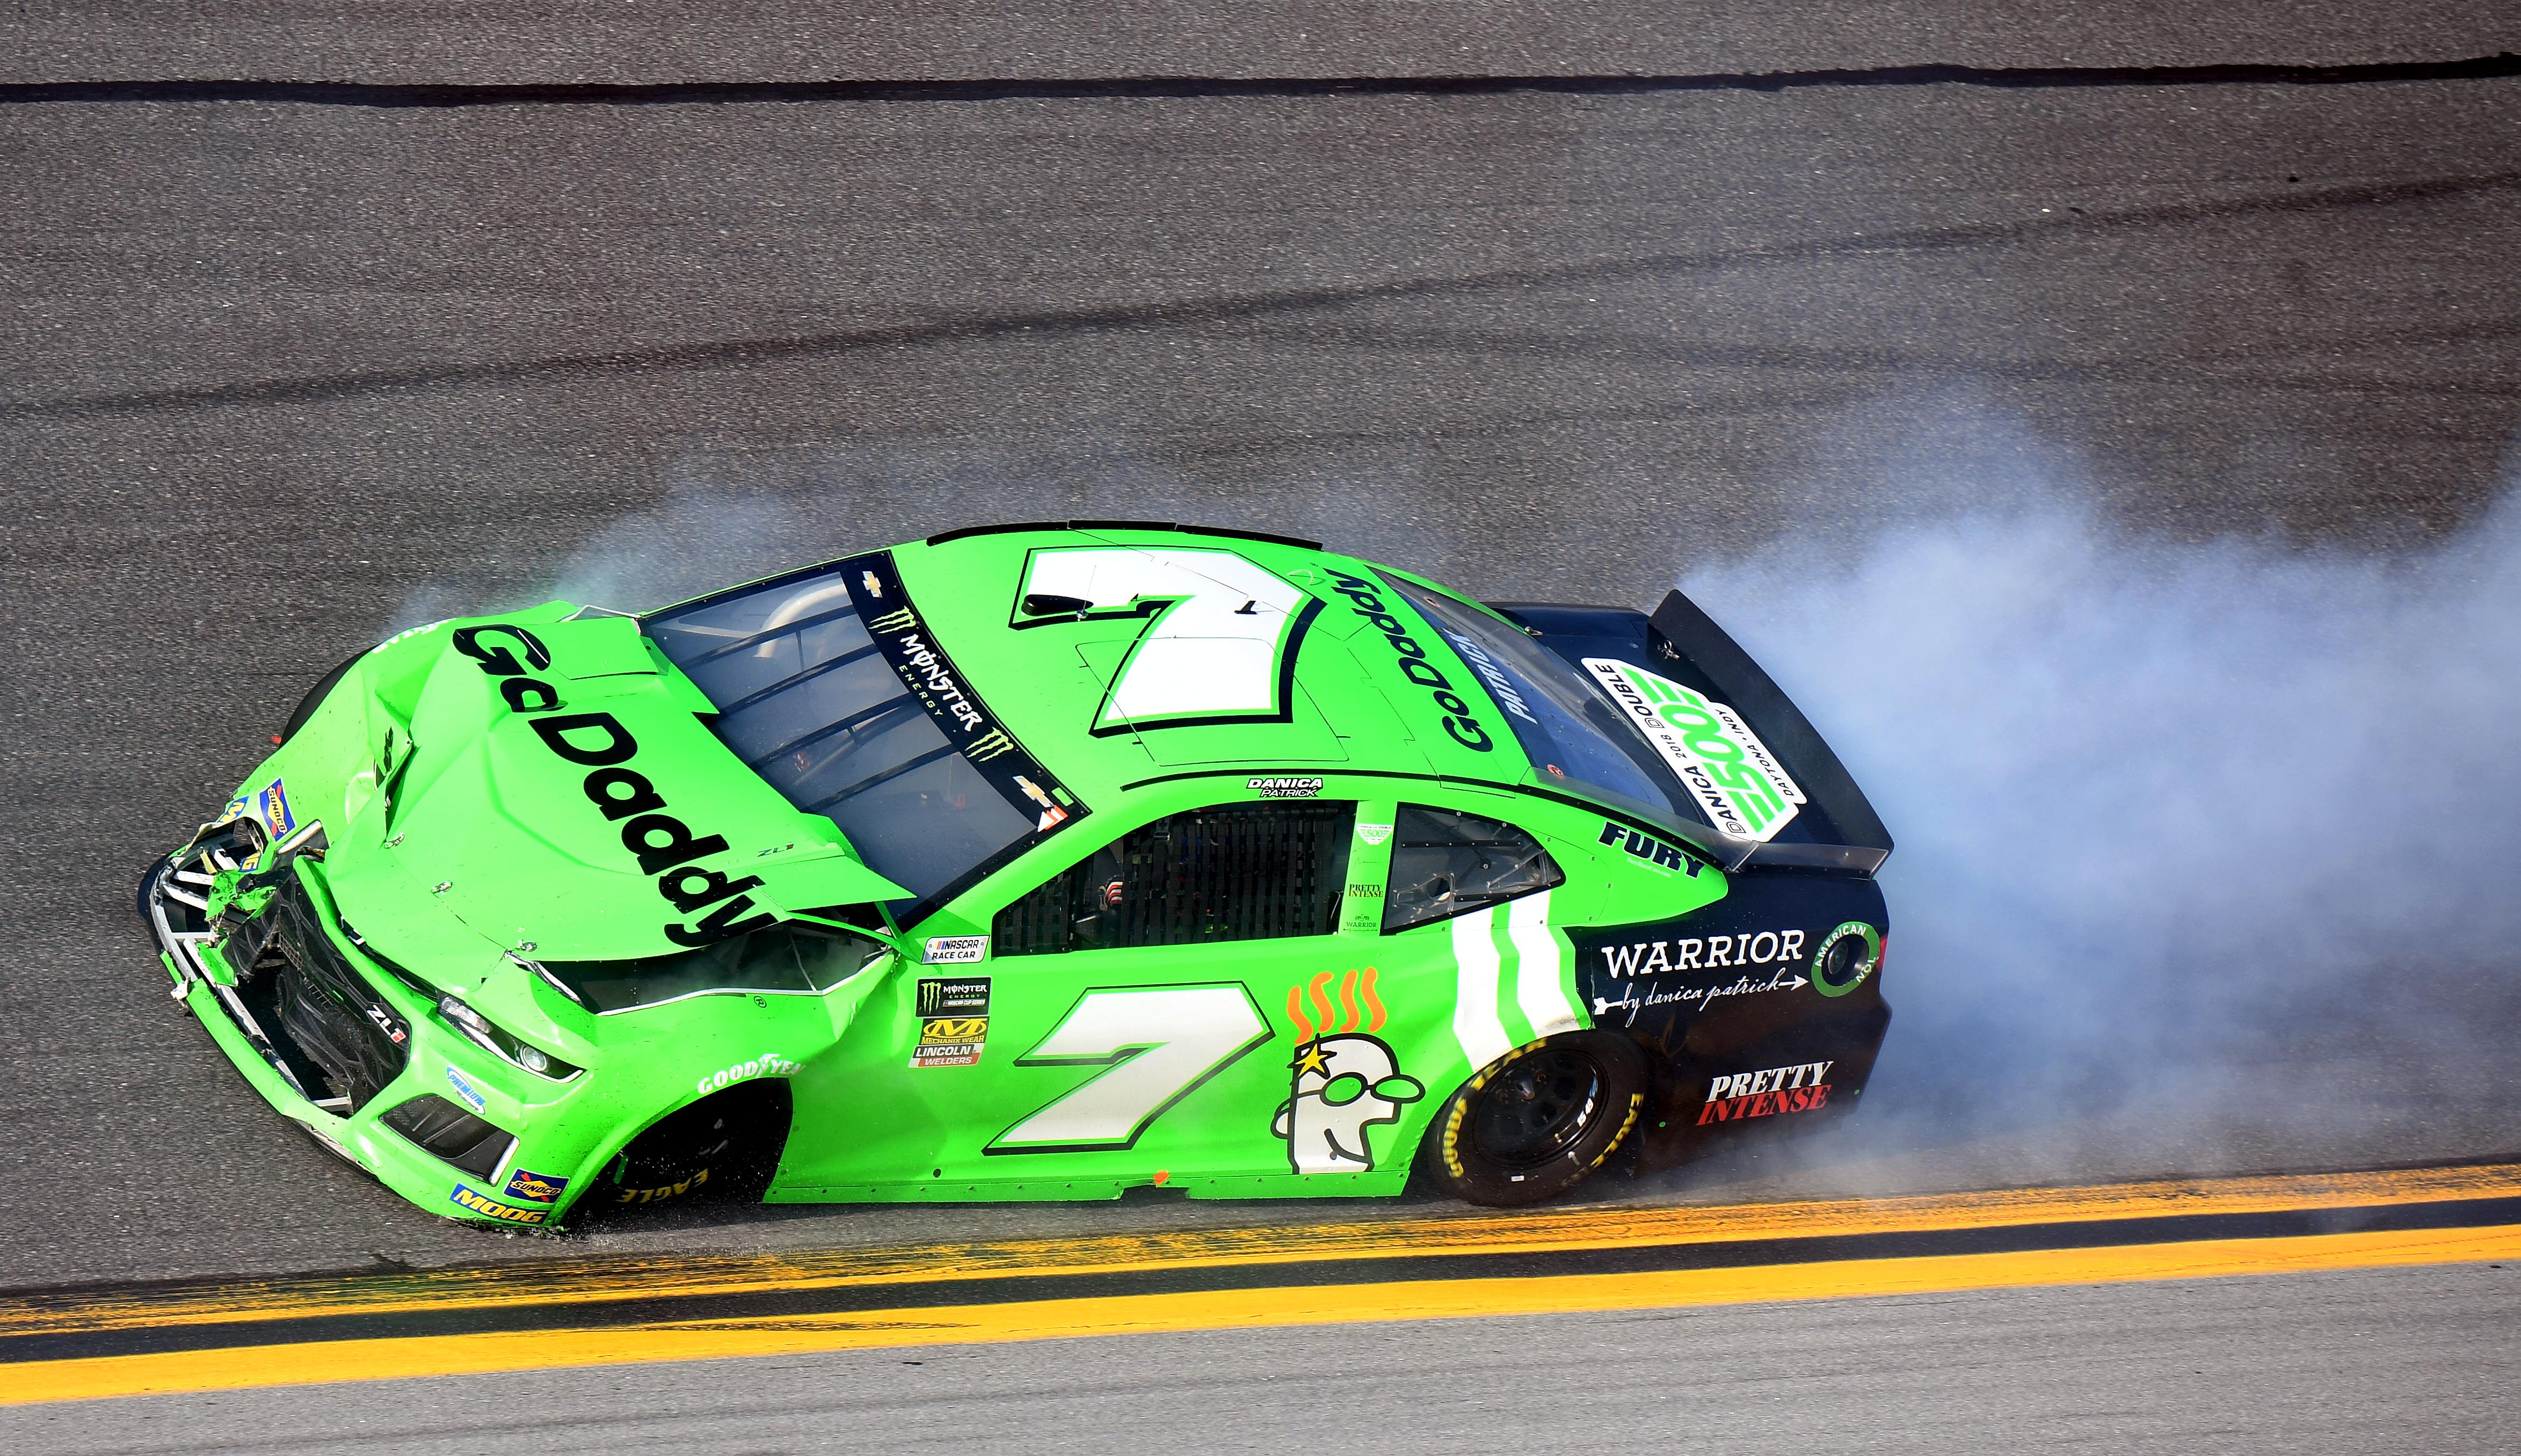 Patrick Featured Image on Nascar Racing Crashes